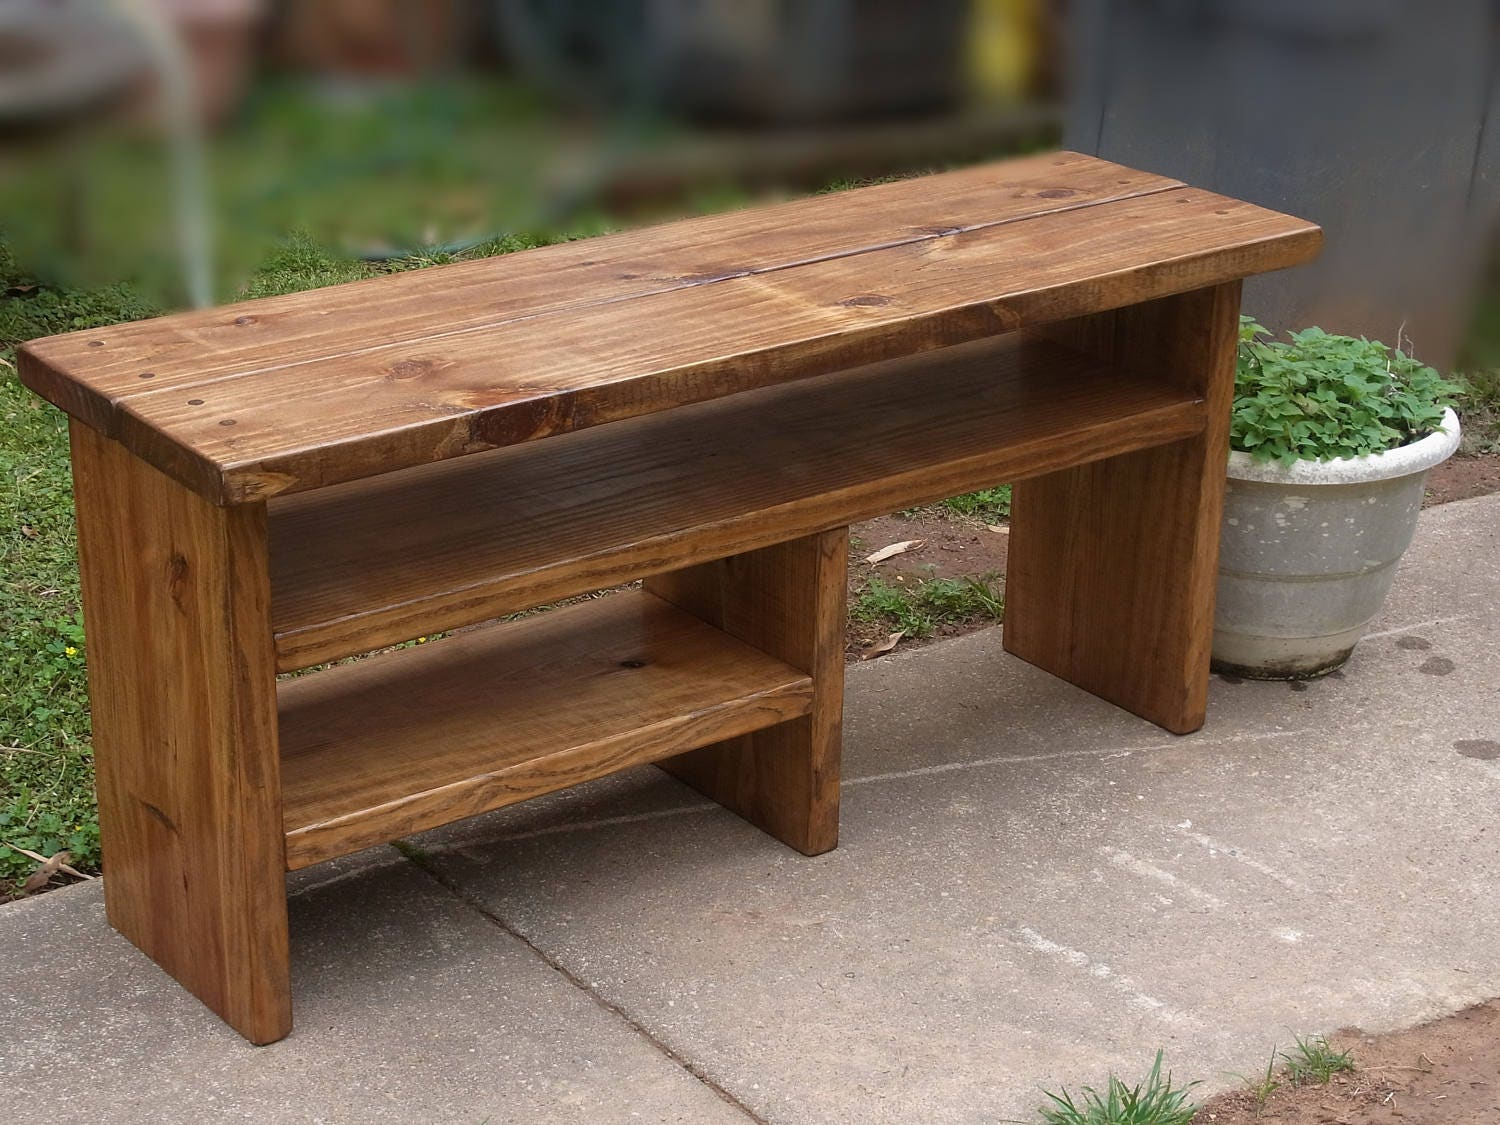 Tall Rustic Boot Cubby Bench Entryway Hallway Mudroom Storage